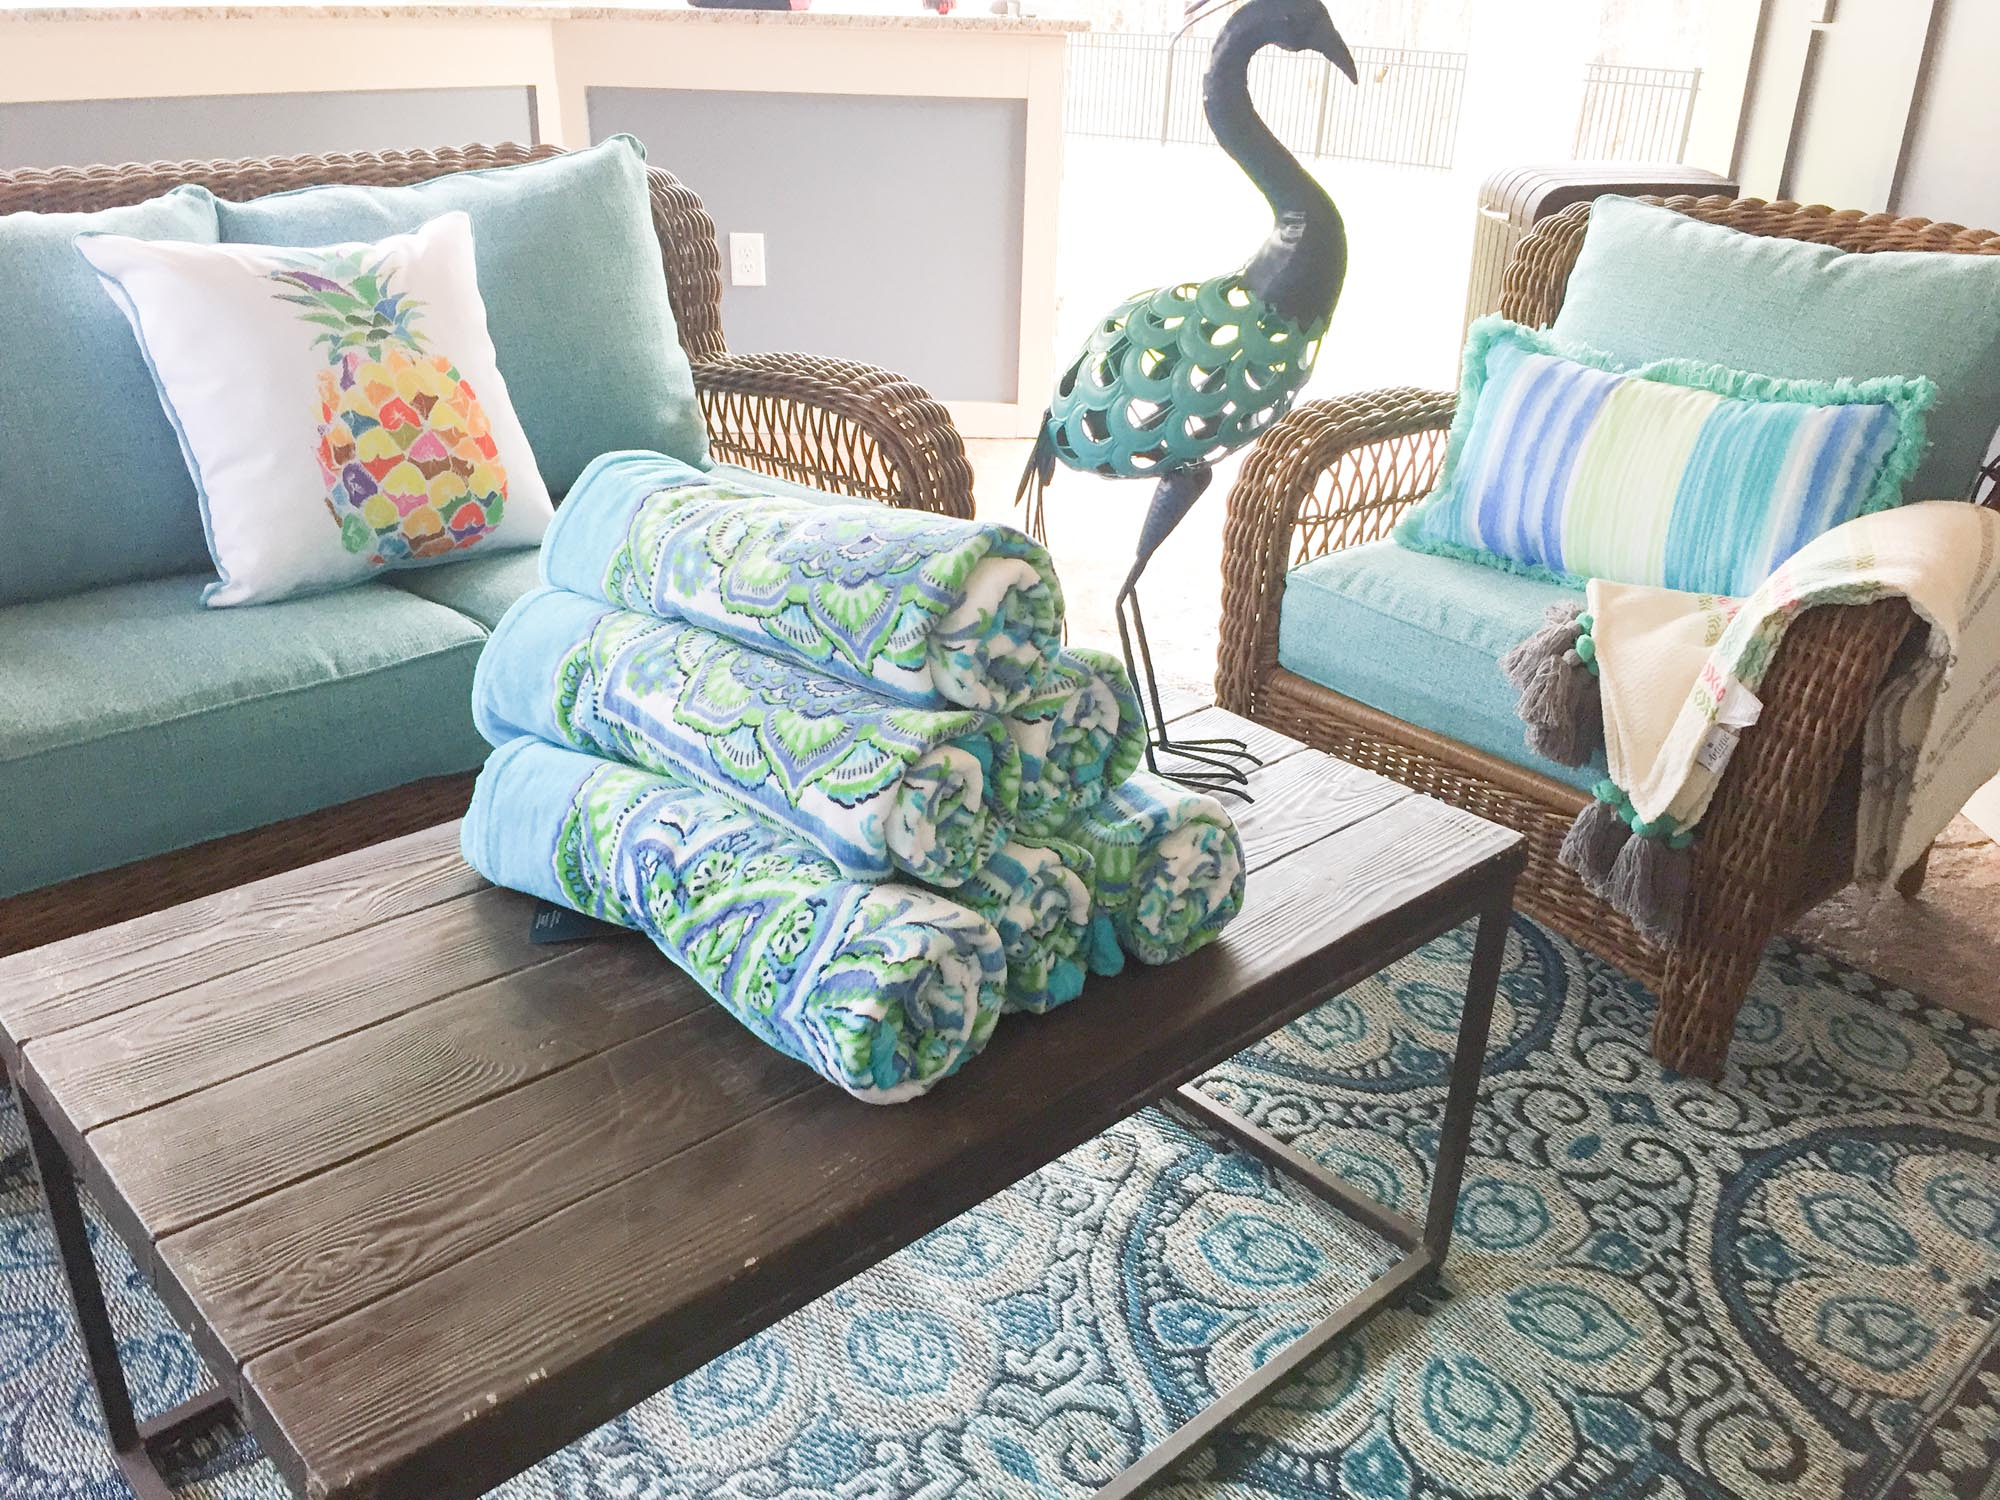 Outdoor seating area with pineapple print pillow